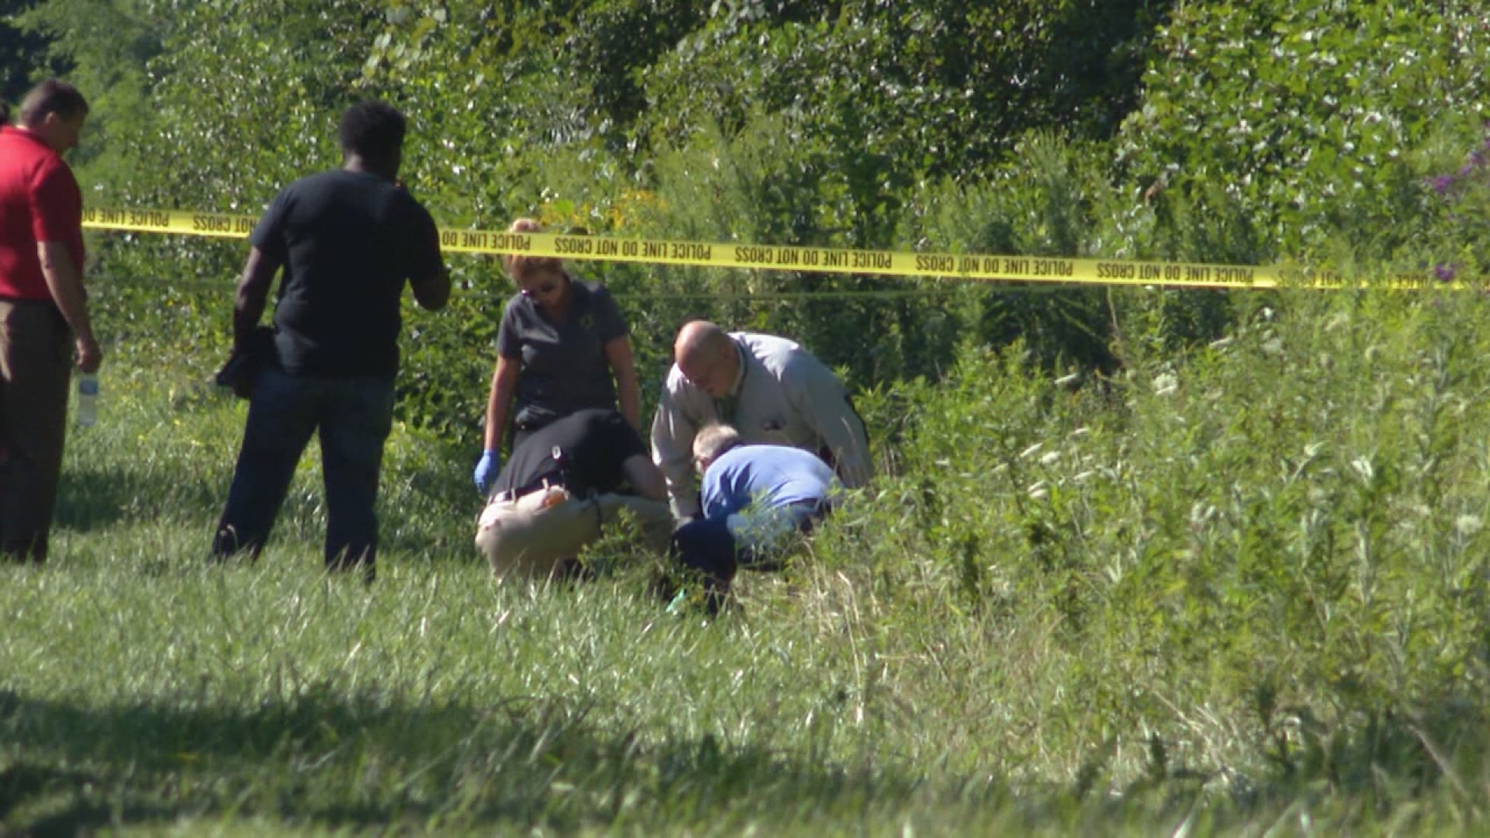 Police investigation after body found in LaPorte County // WSBT 22